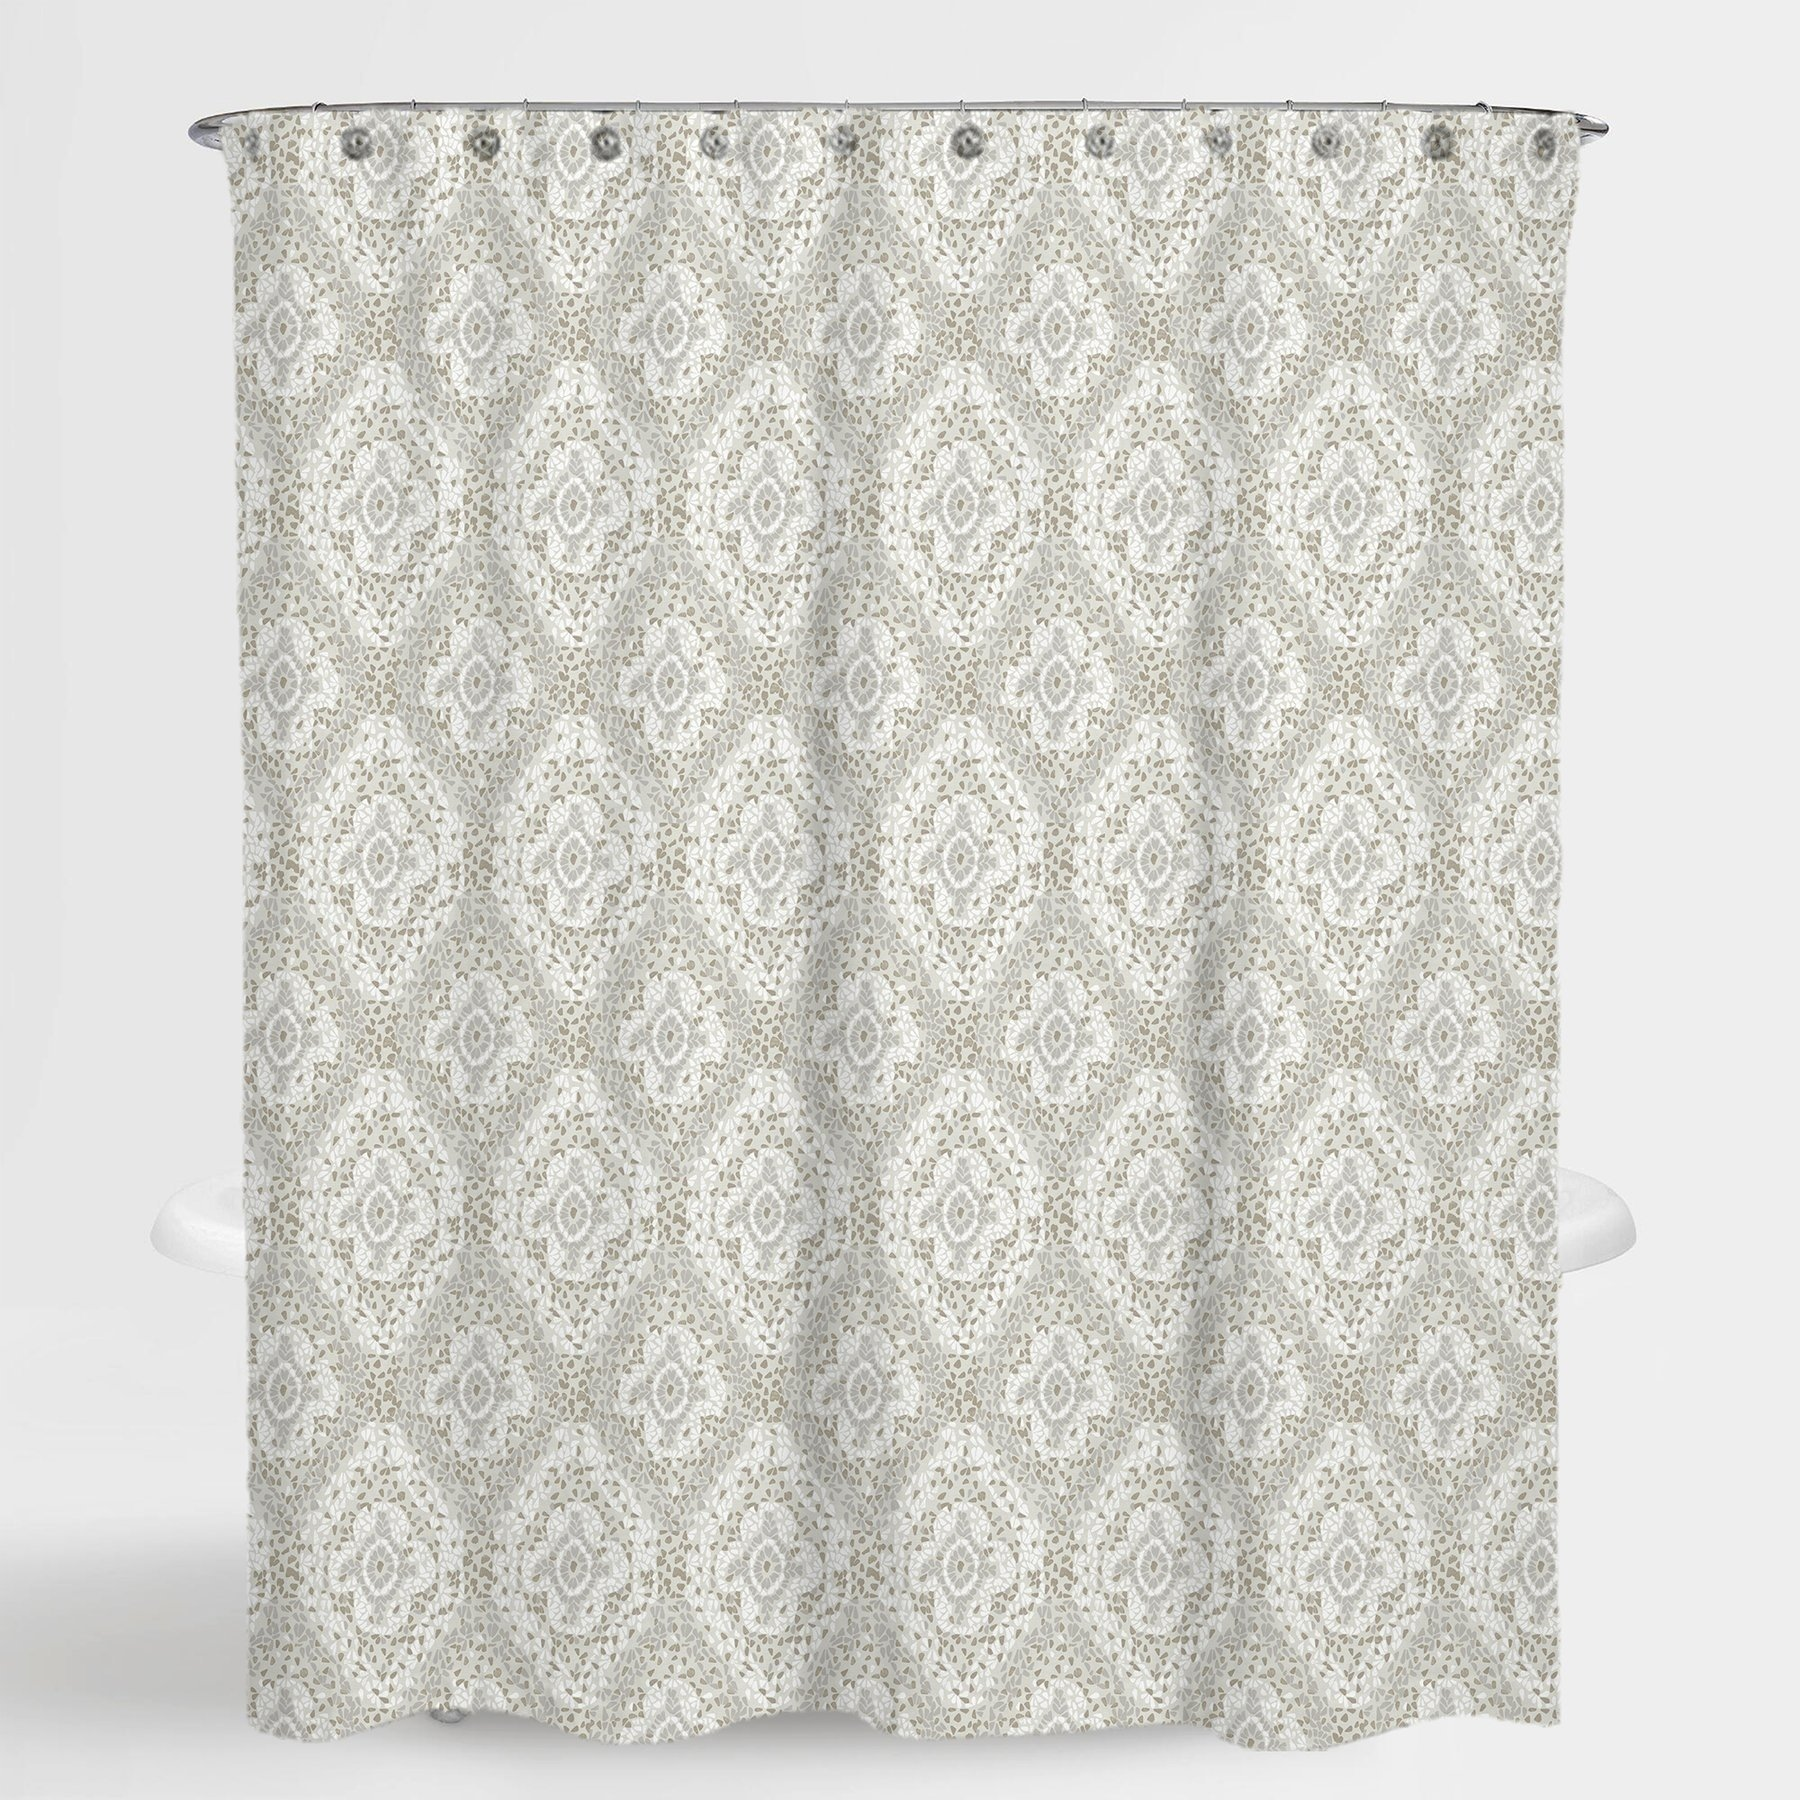 Damask Beige Richmond Water Repellent Shower Curtain 72 X72 Free 12 Piece Sho Fabric Shower Curtains Waffle Weave Shower Curtain Curtains With Rings